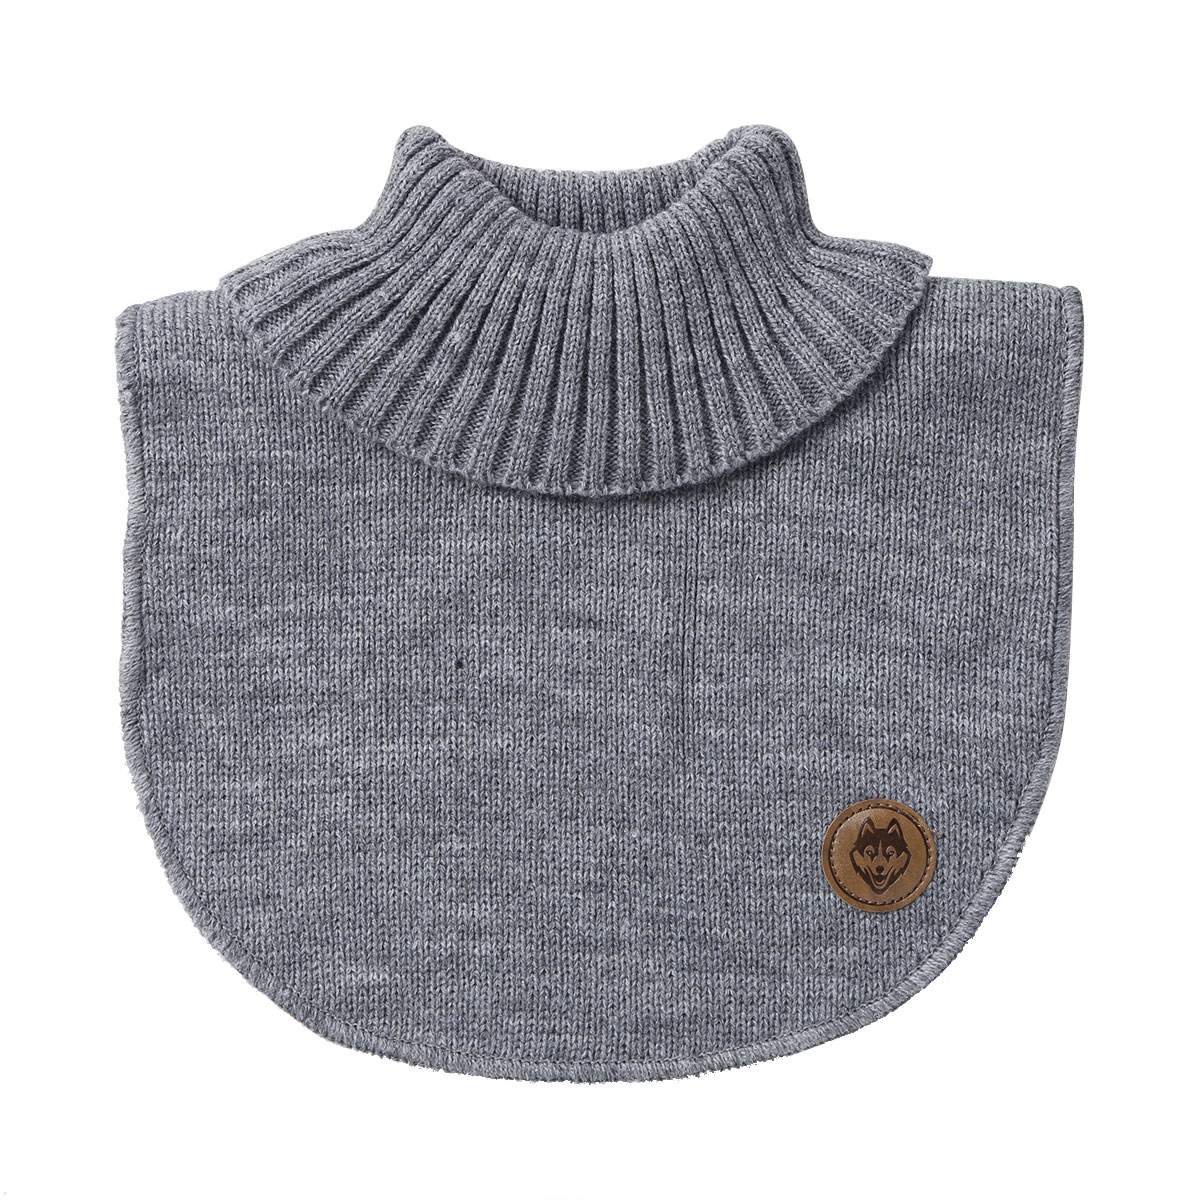 Boy's Accessories Apparel Accessories Latest Collection Of Baby Childrens Neck Gaiter Scarf Fake Collar Kraagjes Dames Baby Turtleneck Warmer Sweater Collar Neck Cover Lightweight Collar